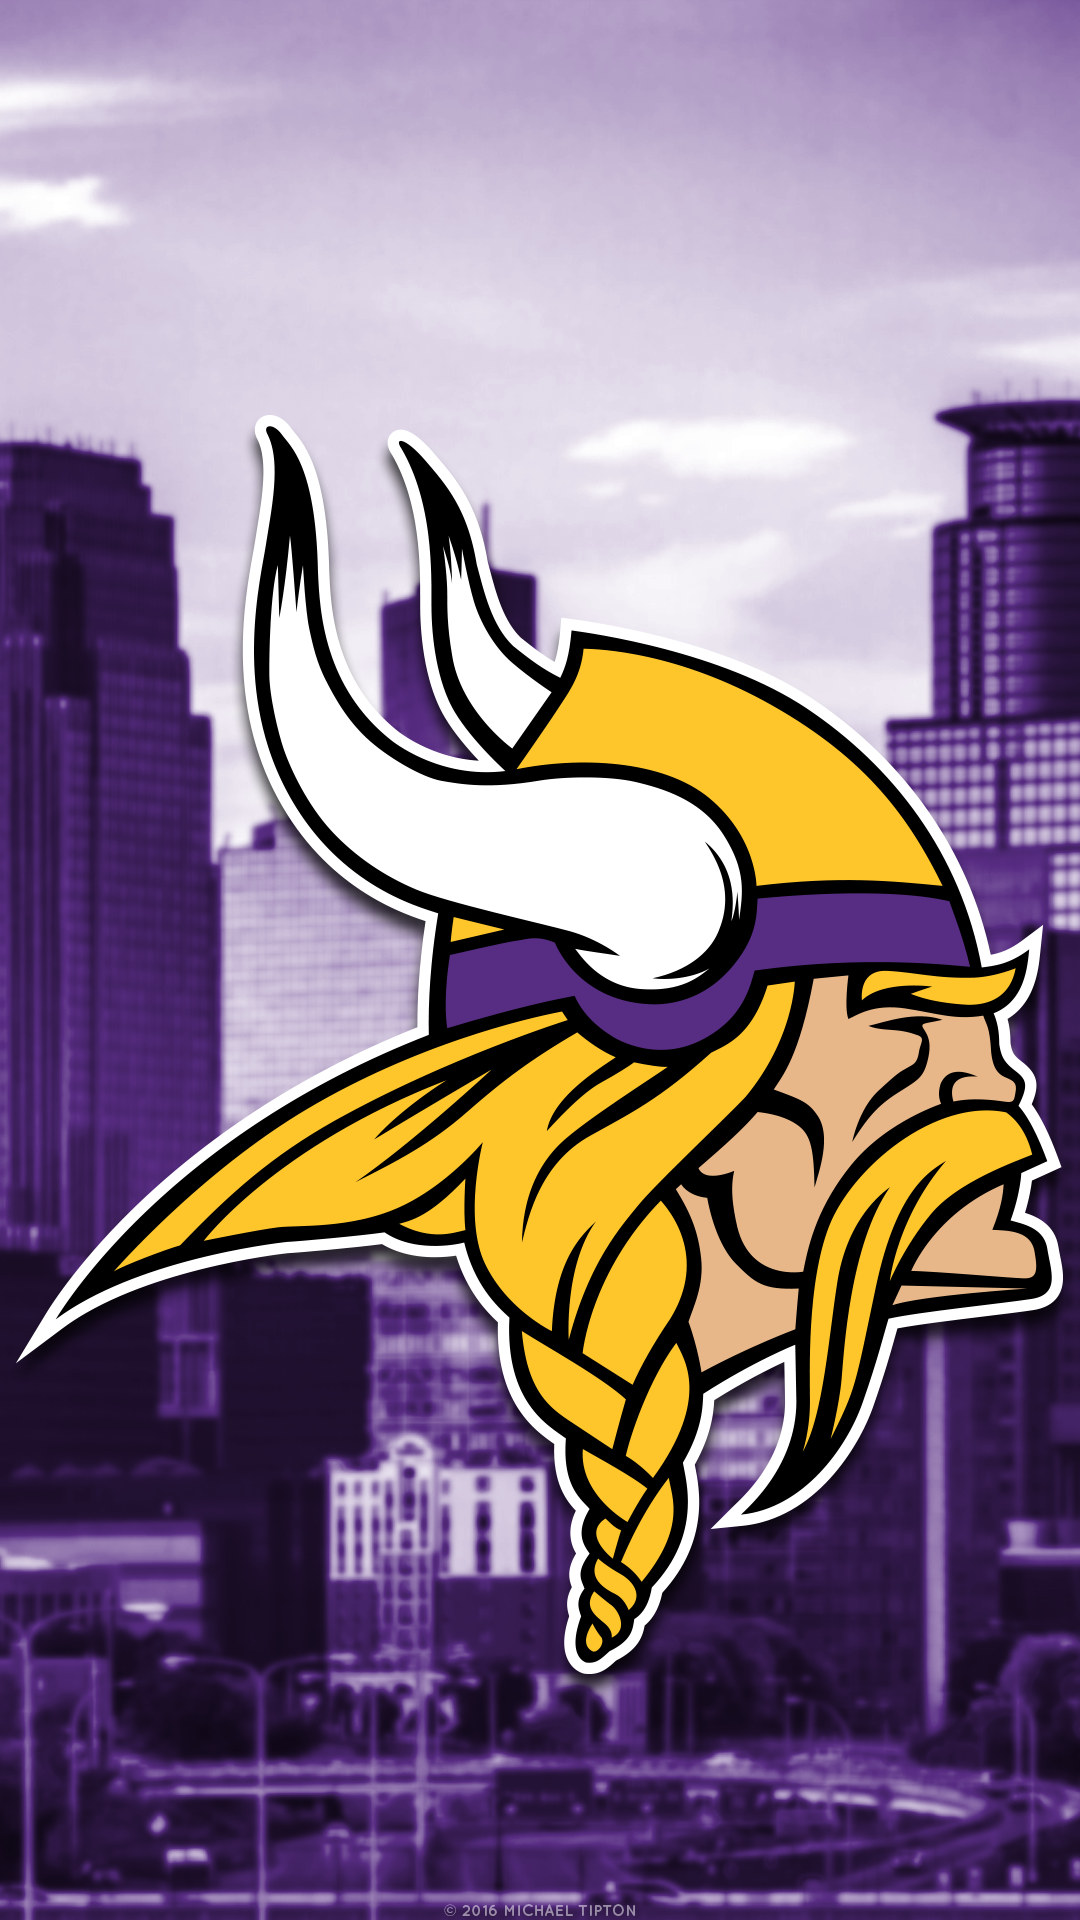 Minnesota Vikings Hd Wallpapers Backgrounds Wallpaper Vikings 1080p